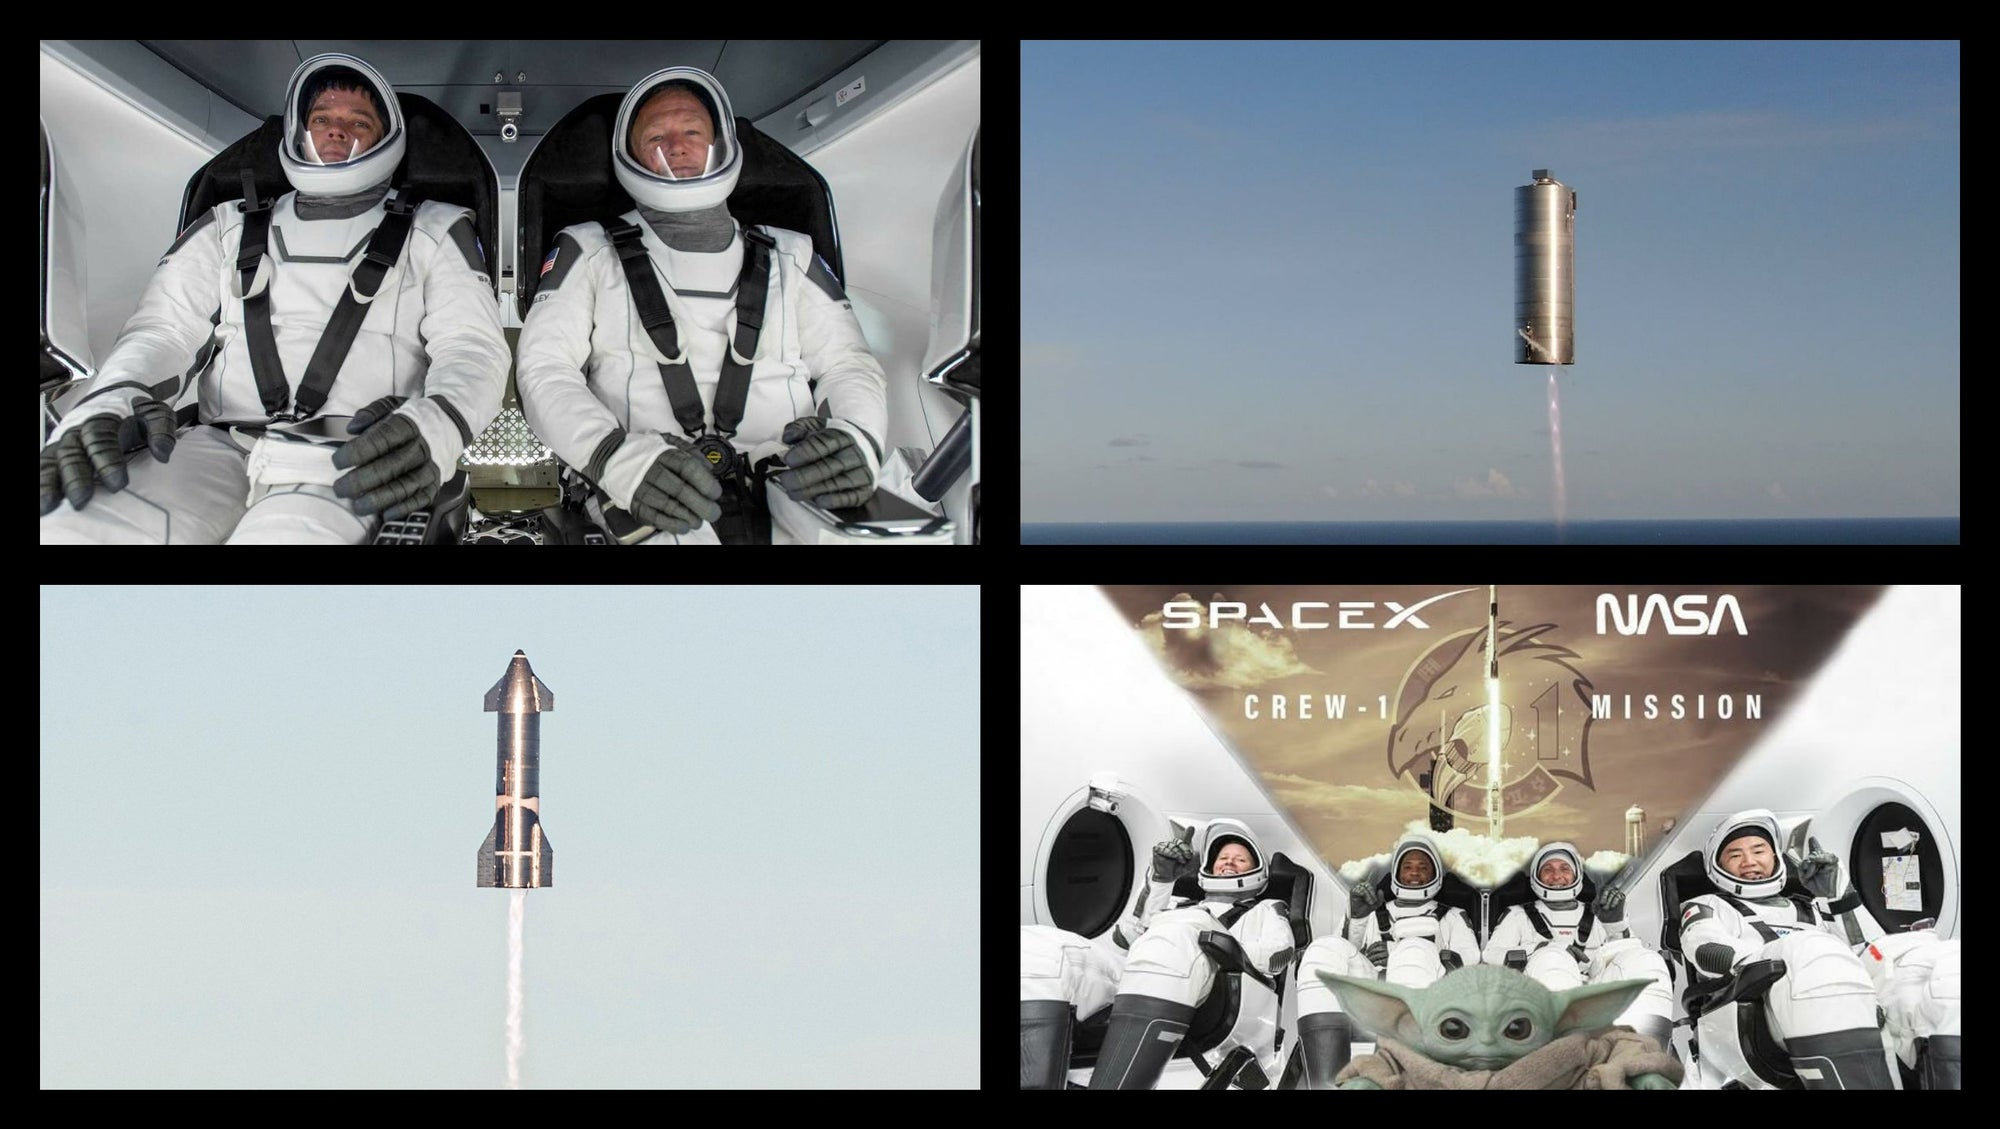 Let's look back at SpaceX's greatest accomplishments of 2020!